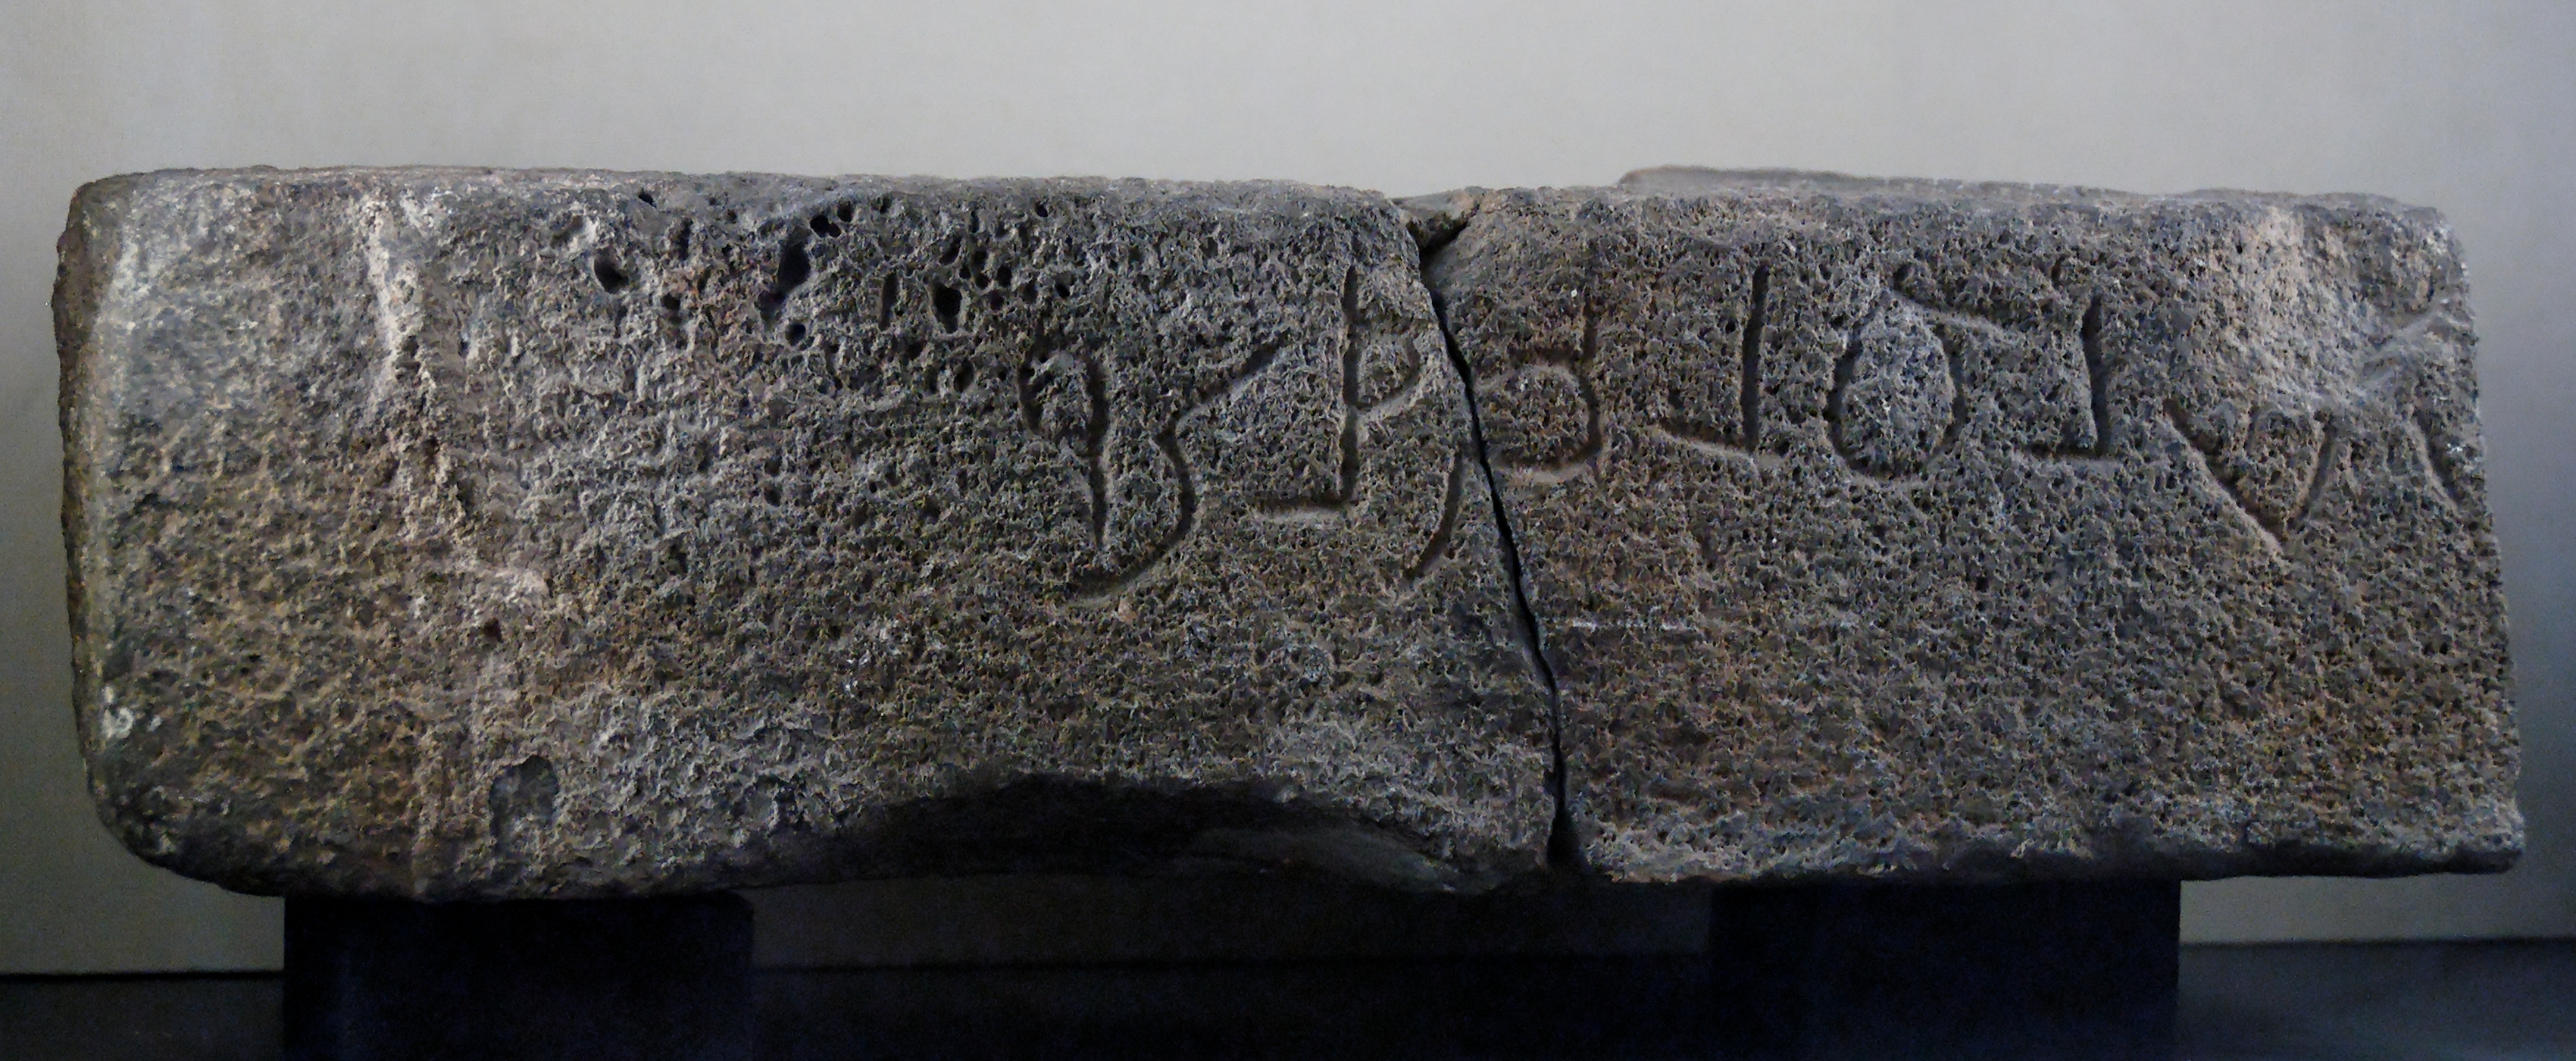 Christian script from 1st century carbon dating